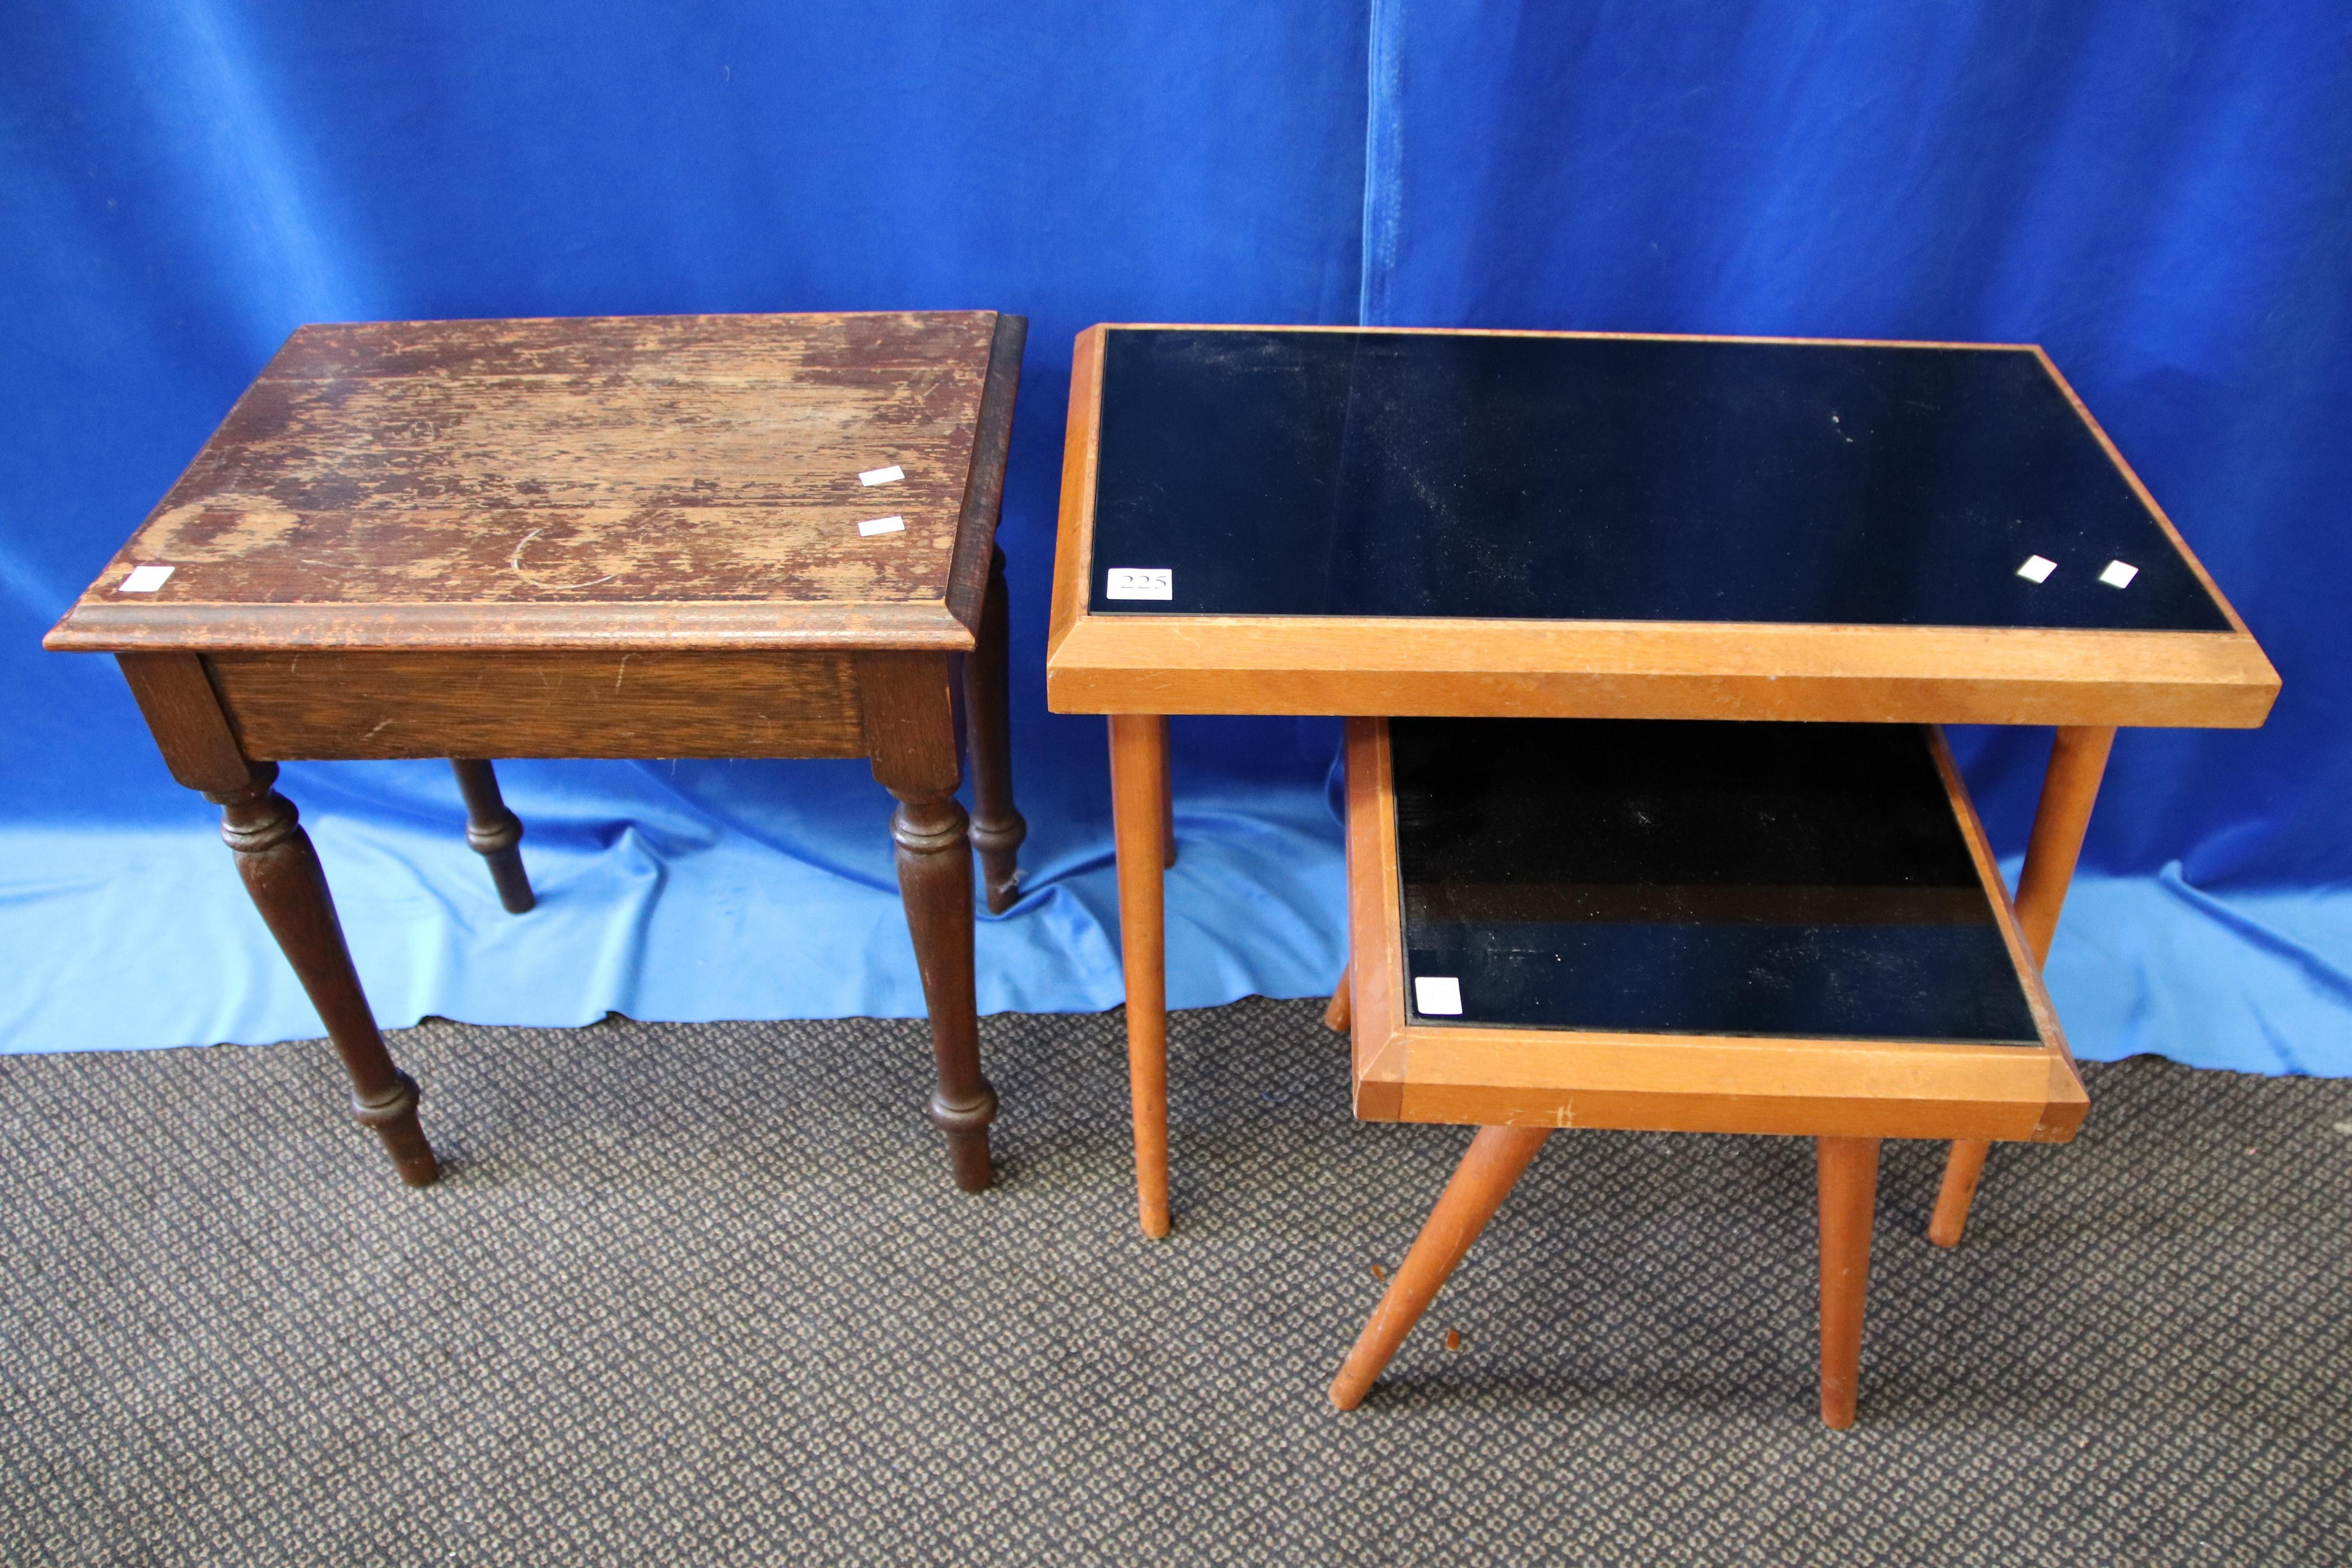 3 SIDE TABLES -2 WITH GLASS TOPS